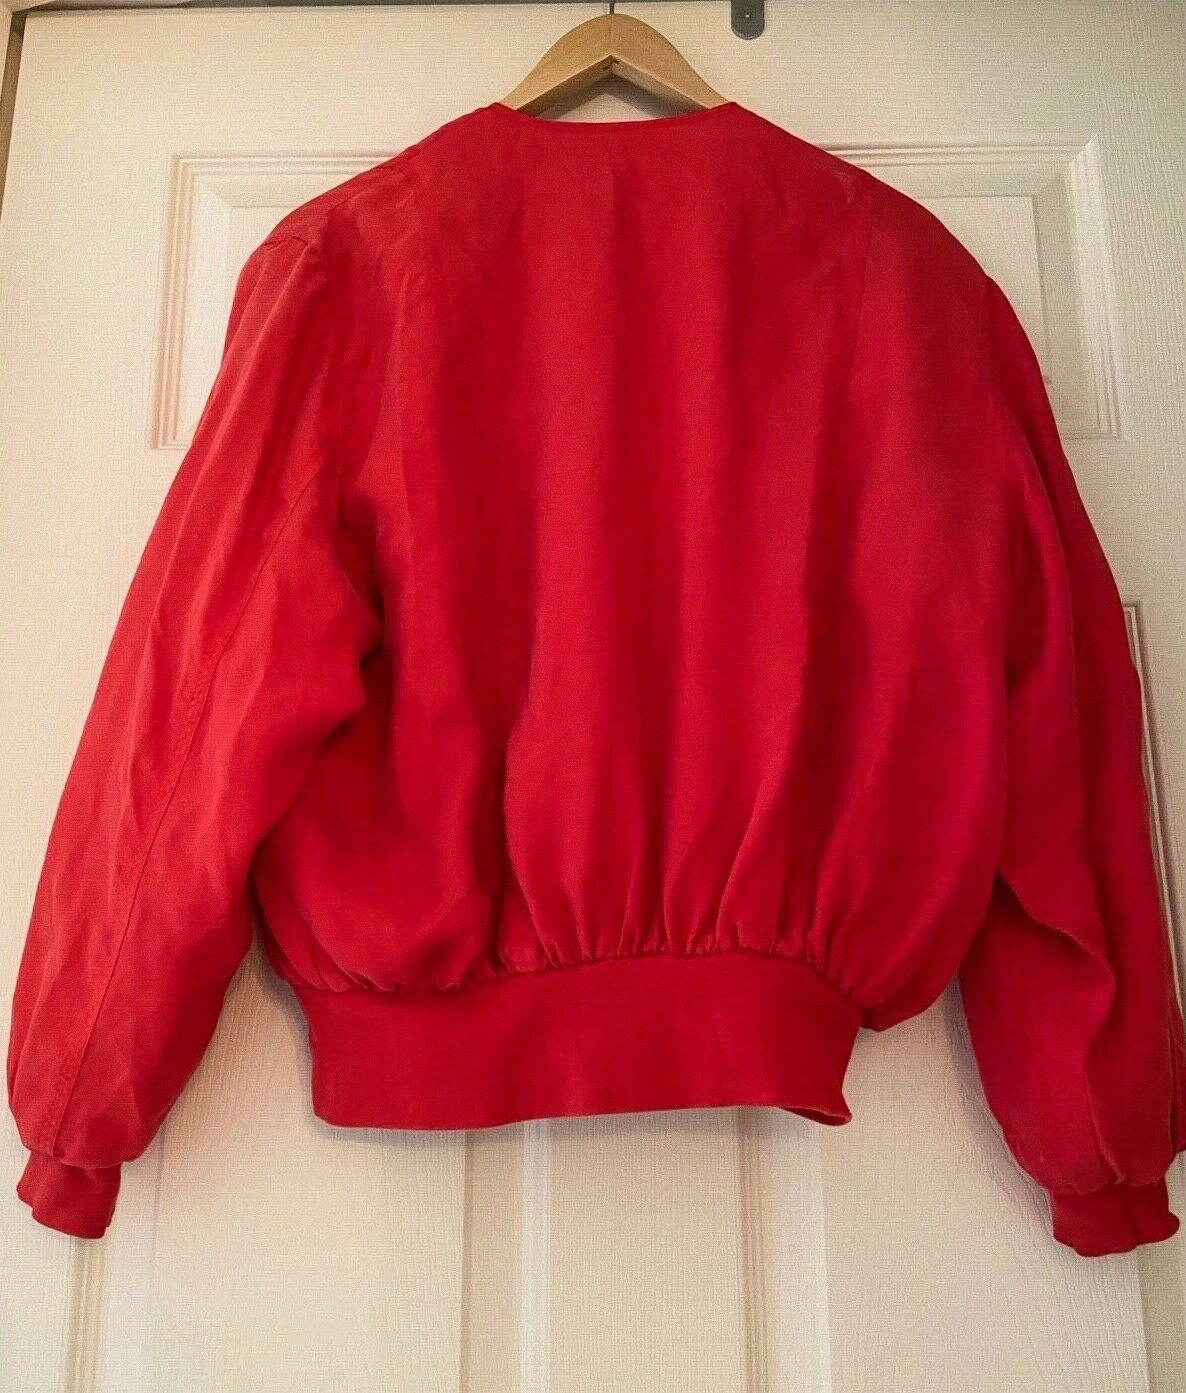 Red 100% silk vintage bomber jacket - size small - image 3